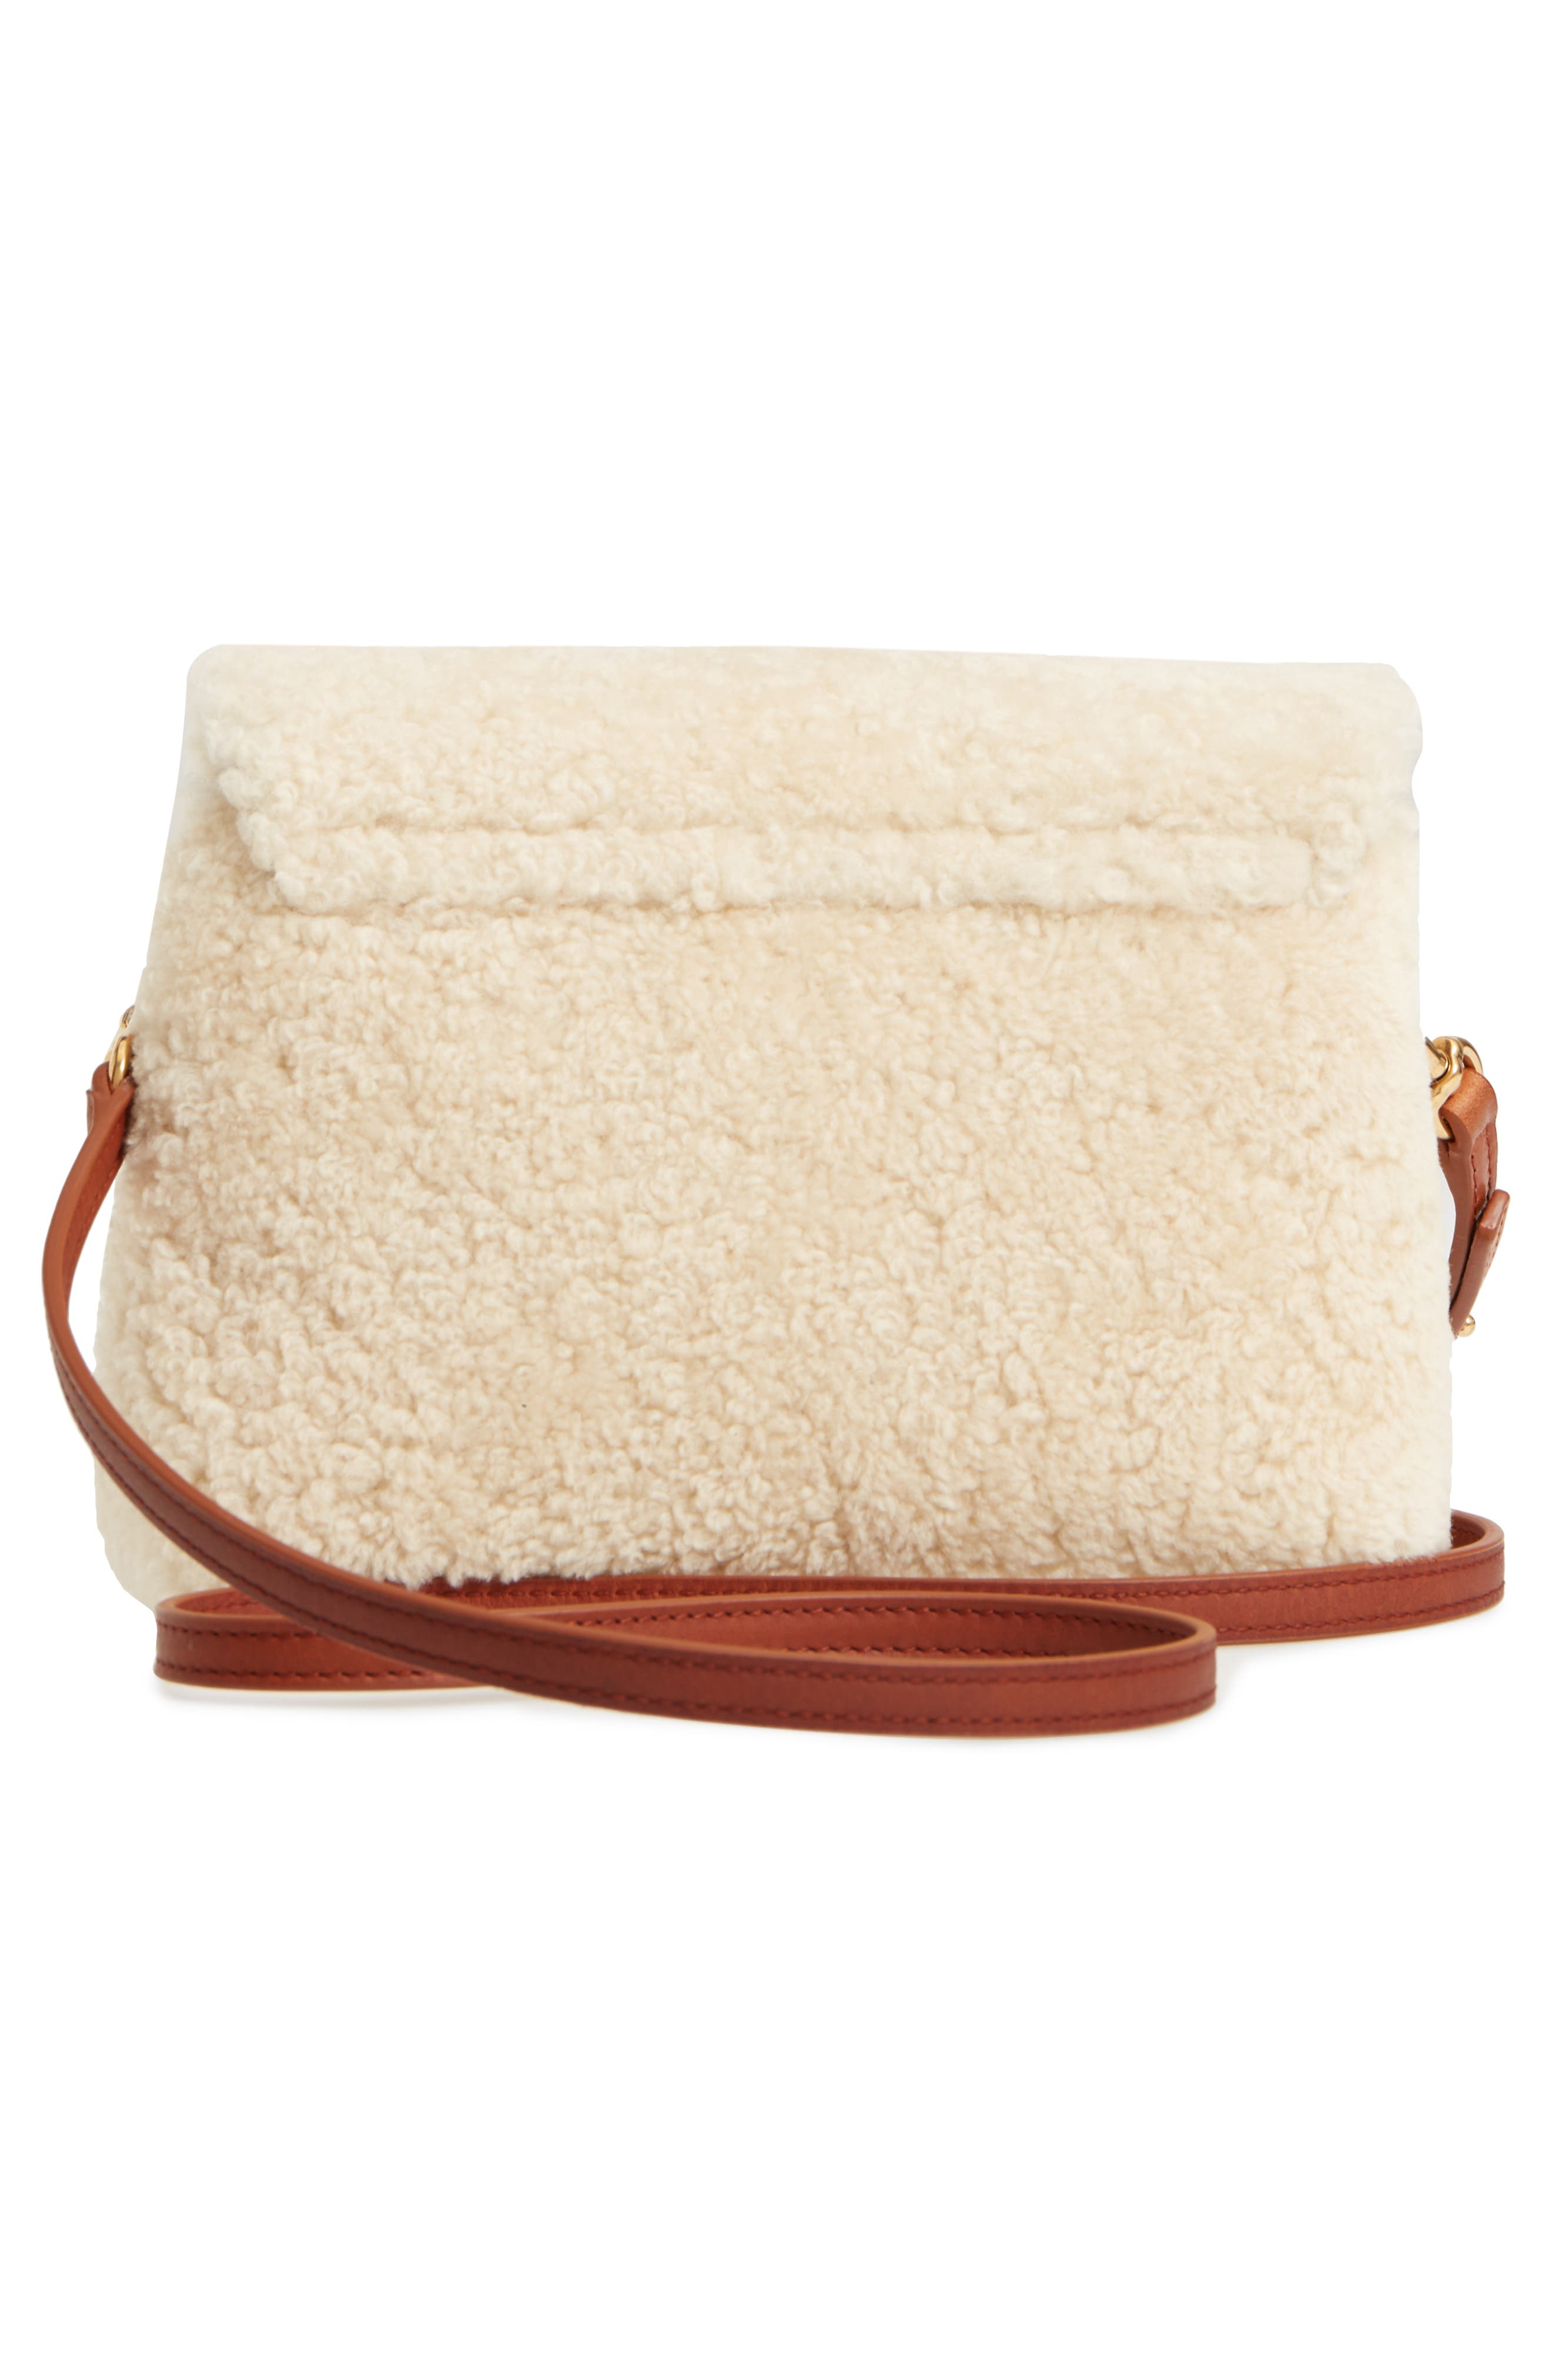 Small Loulou Genuine Shearling Crossbody Bag,                             Alternate thumbnail 3, color,                             NATURALE/ DEEP CUOIO